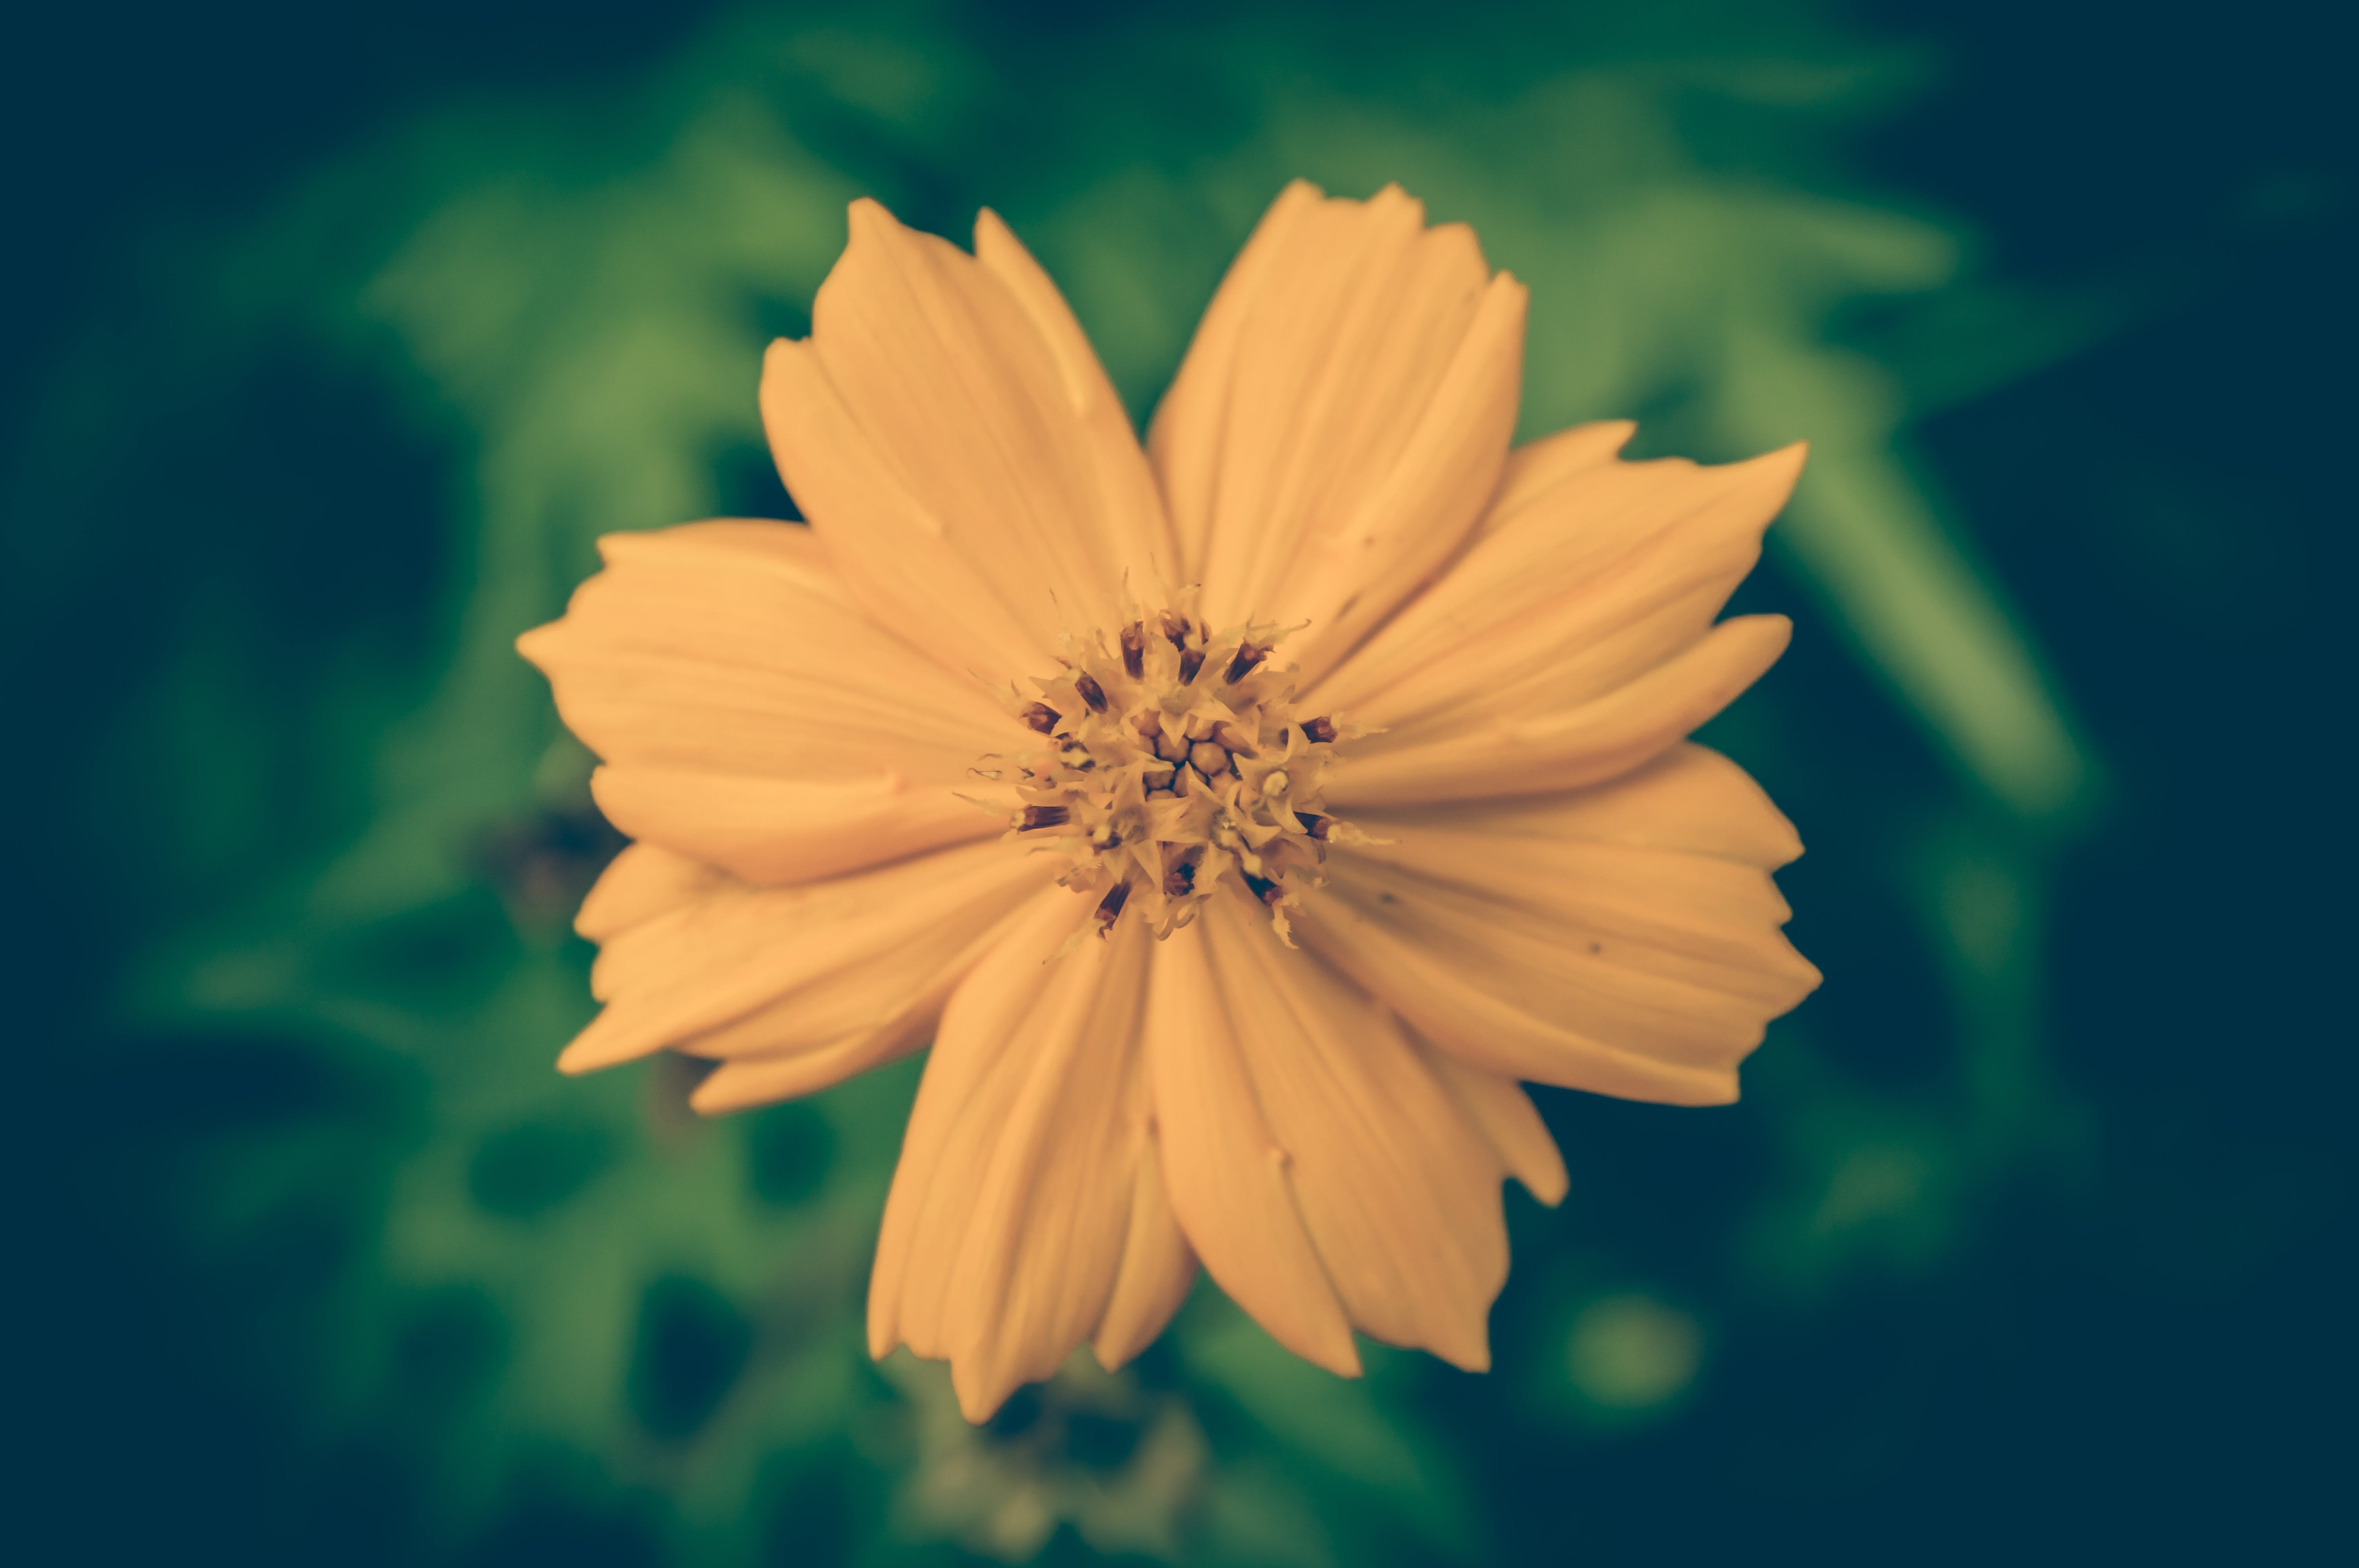 Selective Focus Photography of Yellow Petal Flower